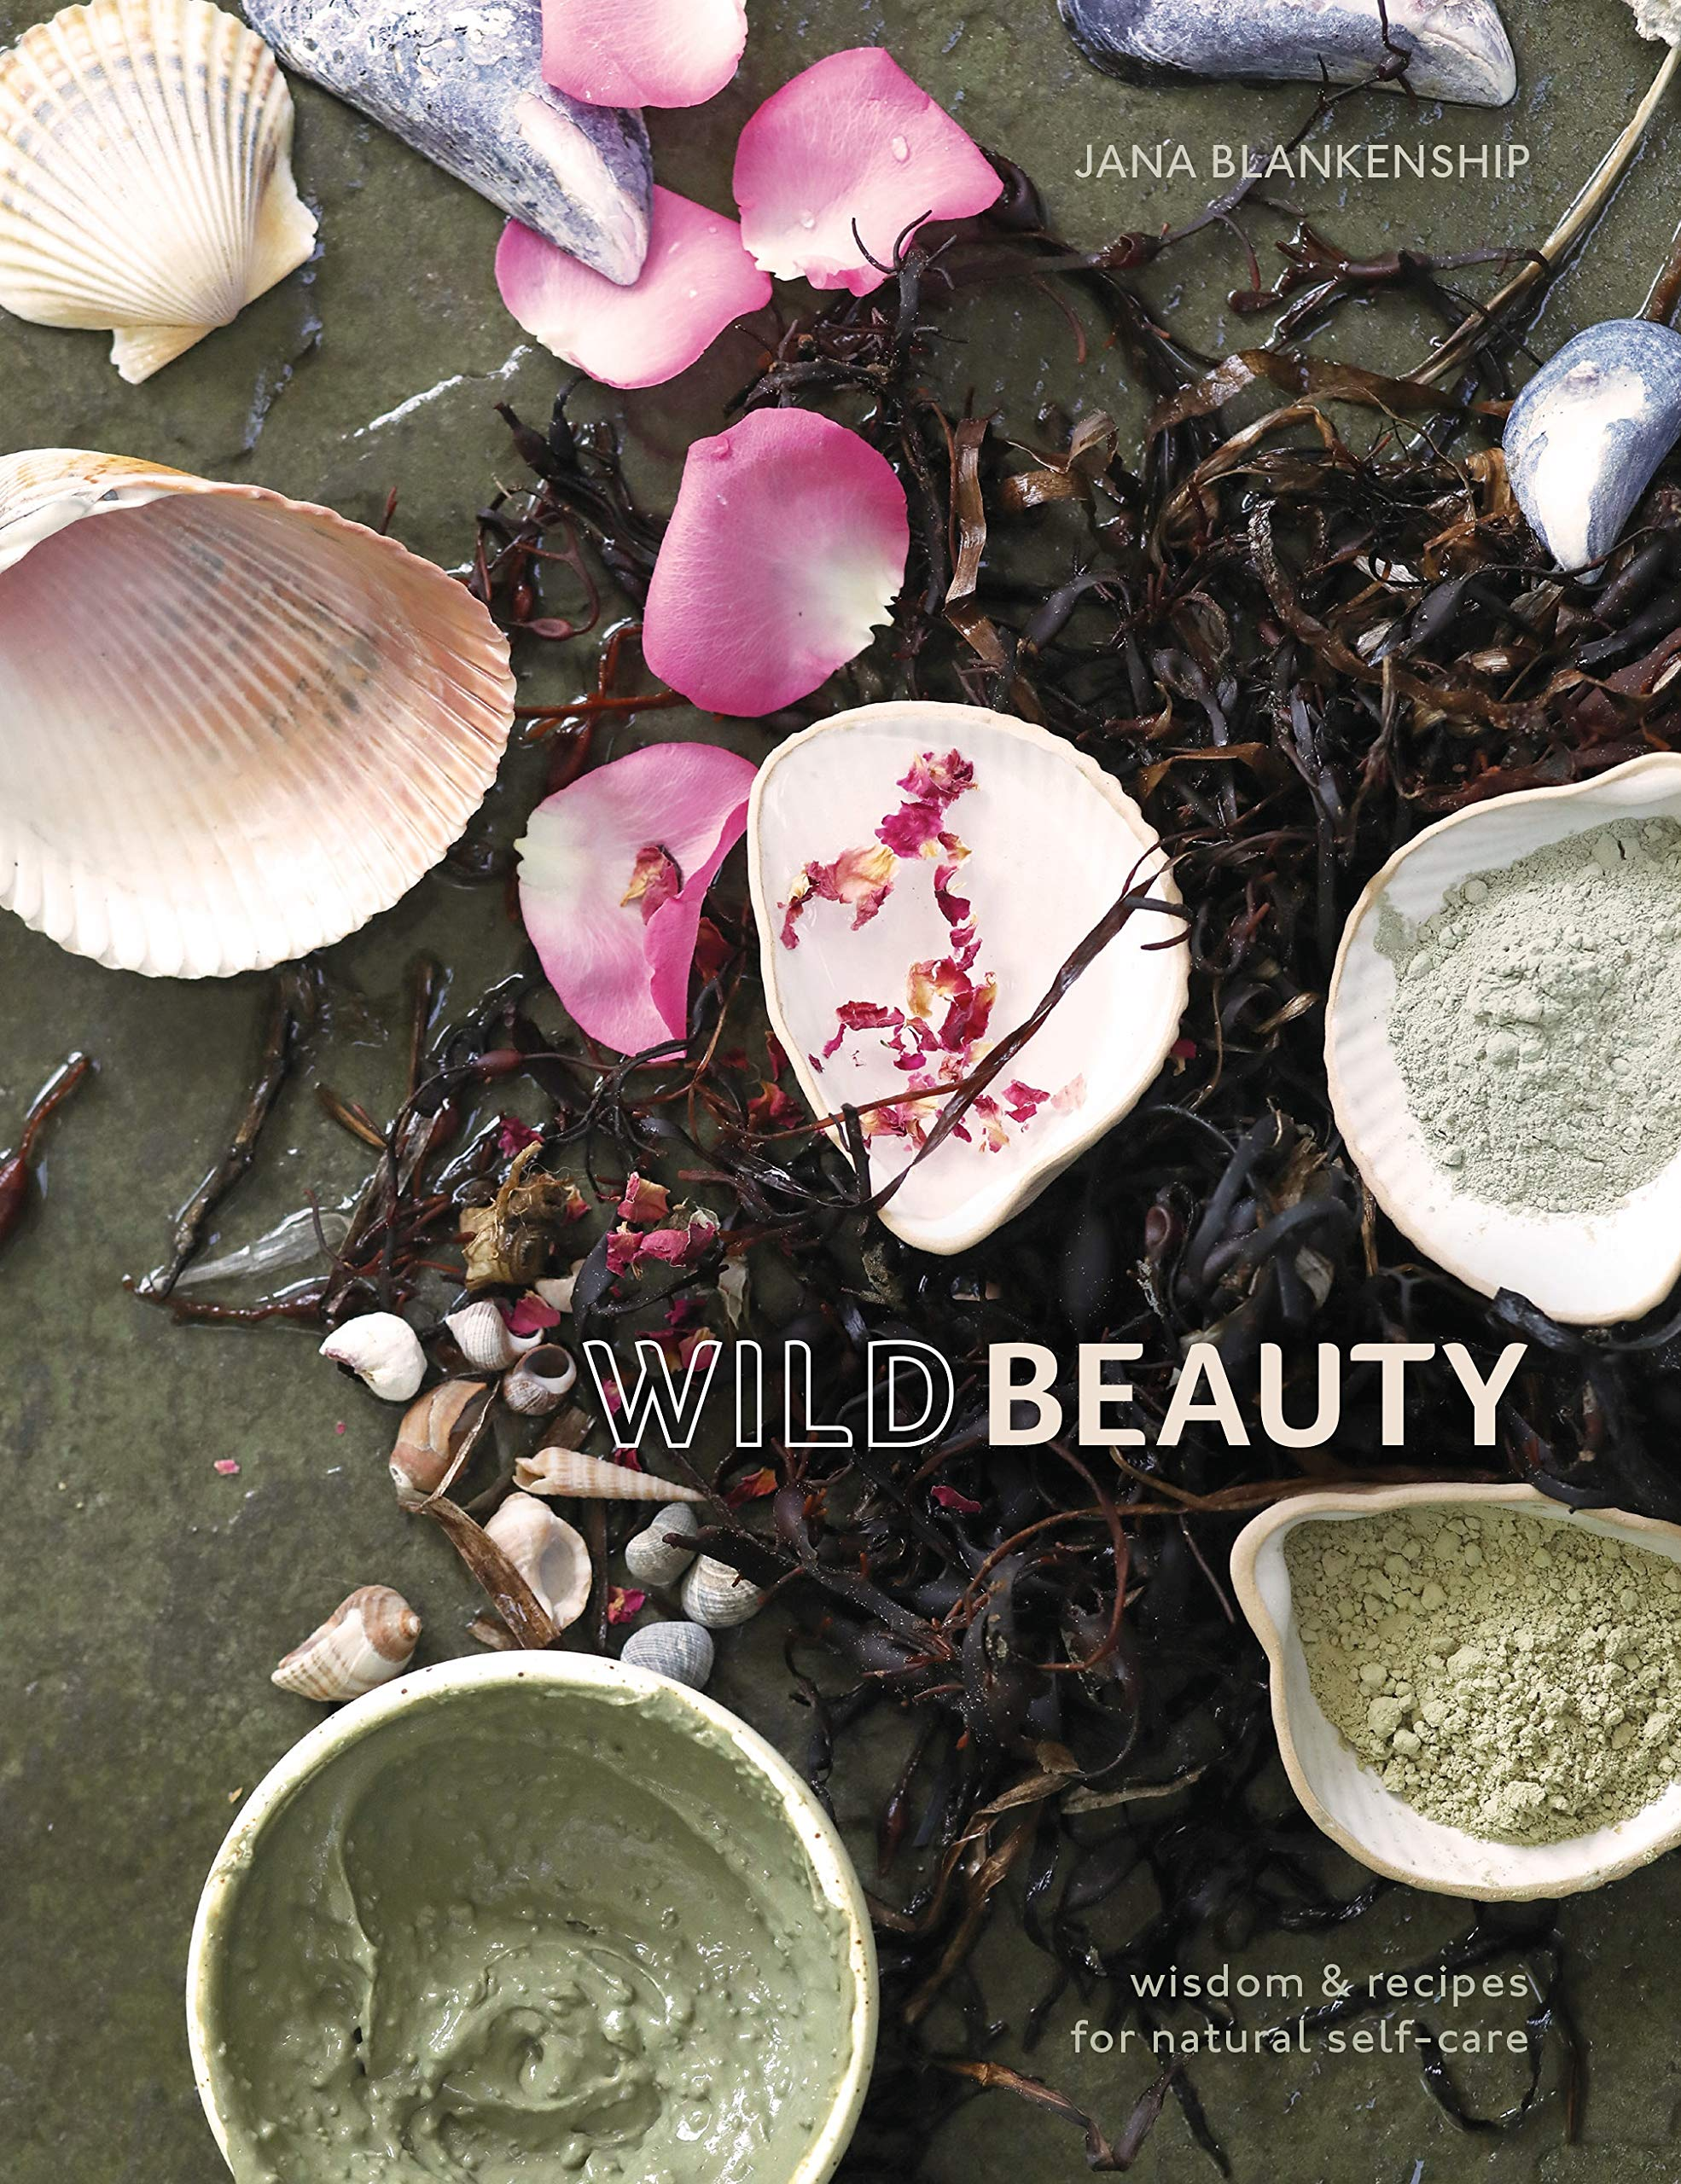 Wild Beauty cover images